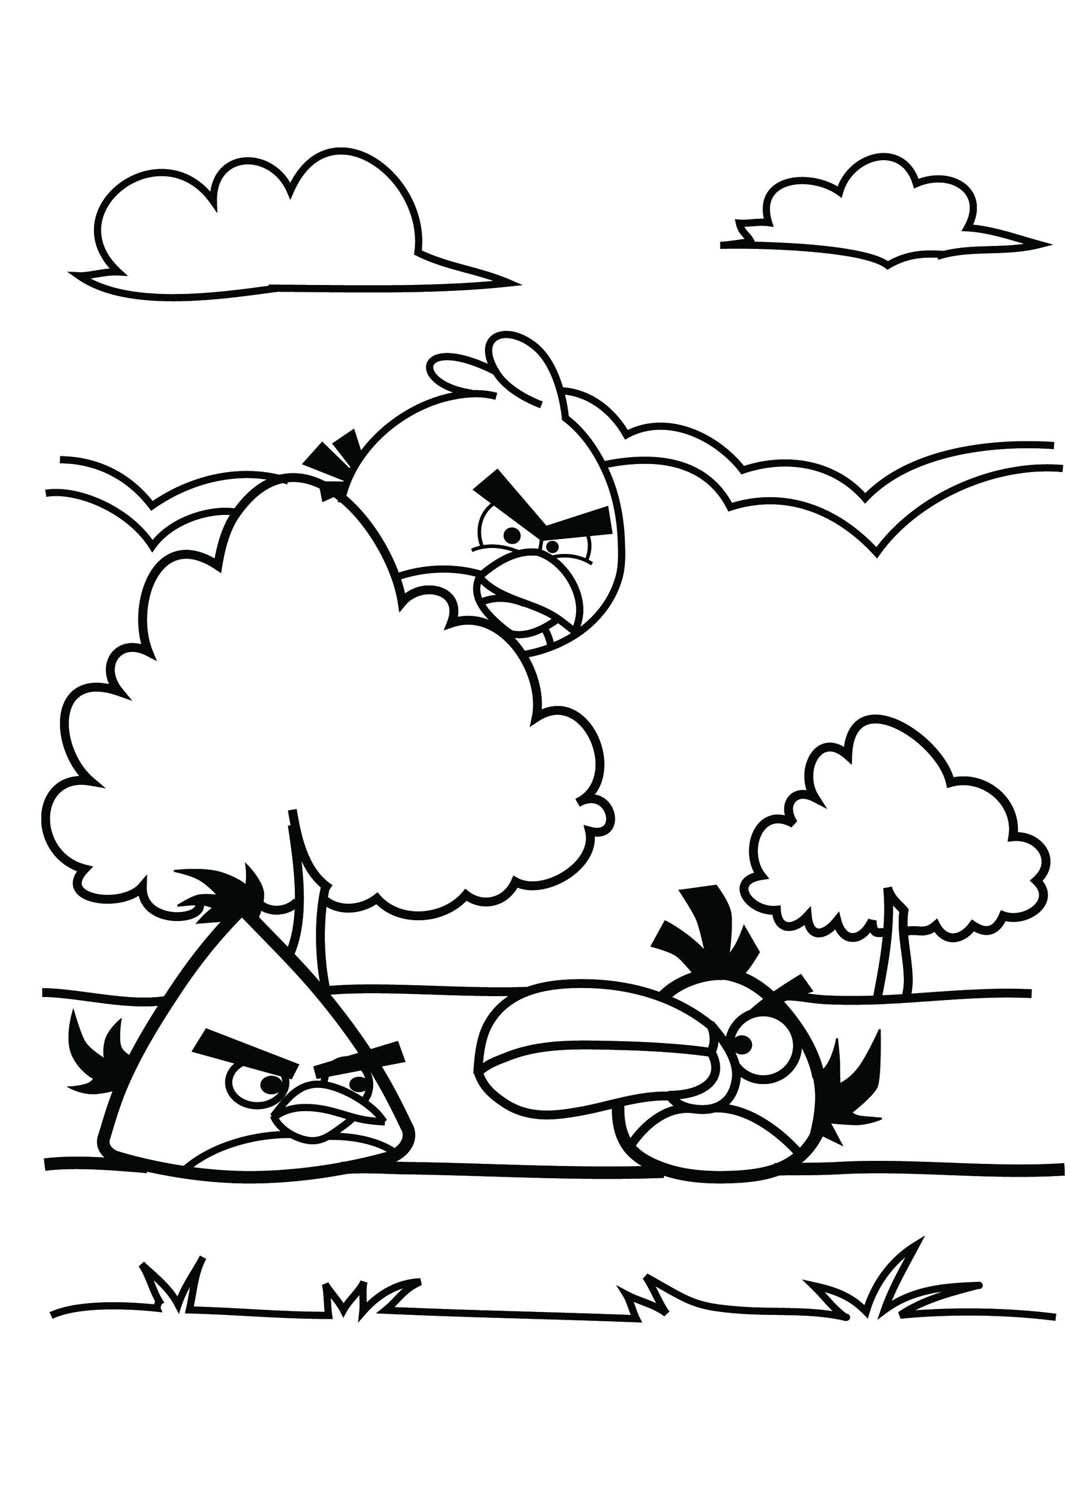 Angry birds 2 coloriage angry birds coloriages pour enfants page 2 - Coloriage angry birds ...